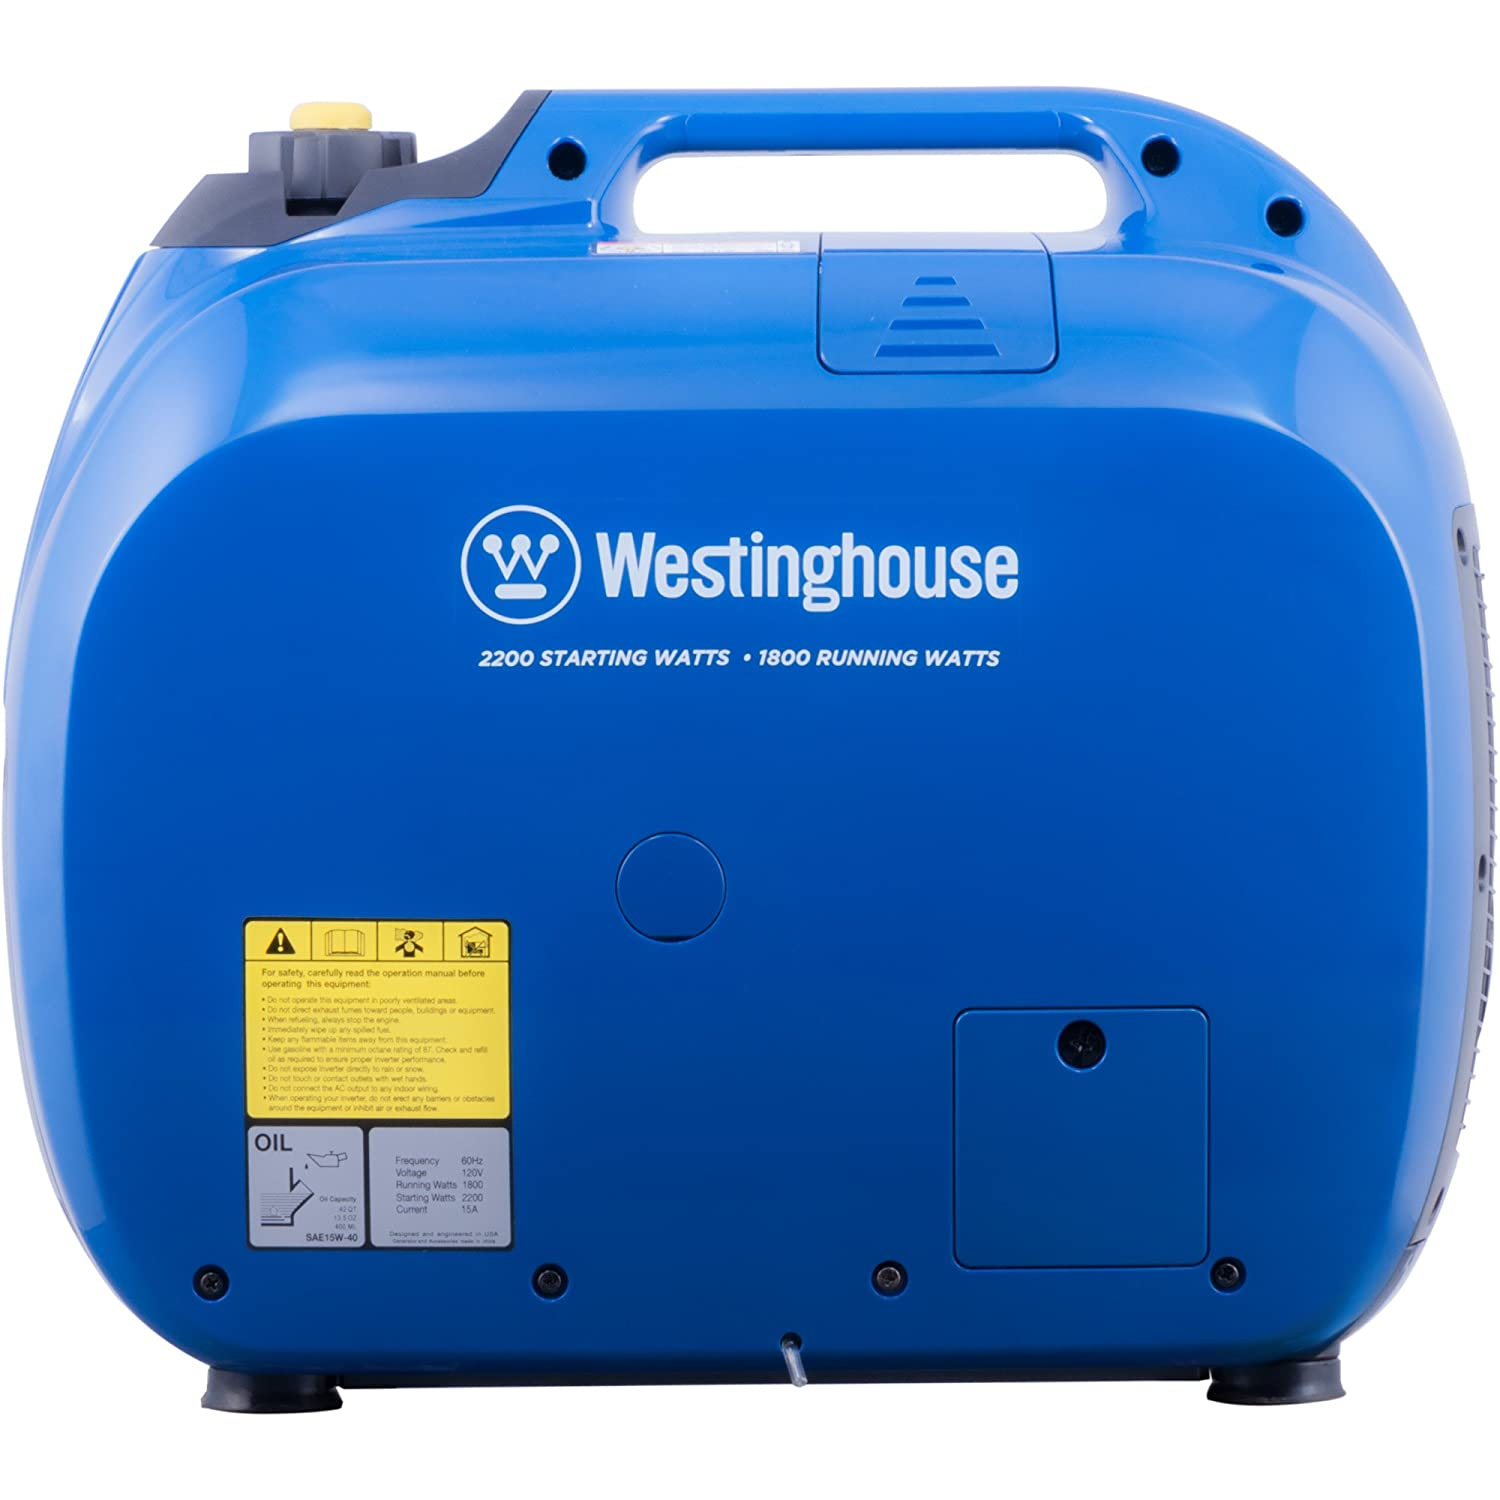 Amazon.com : Westinghouse WH2200iXLT Super Quiet Portable Inverter  Generator - 1800 Rated Watts and 2200 Peak Watts - Gas Powered - CARB  Compliant : Garden ...